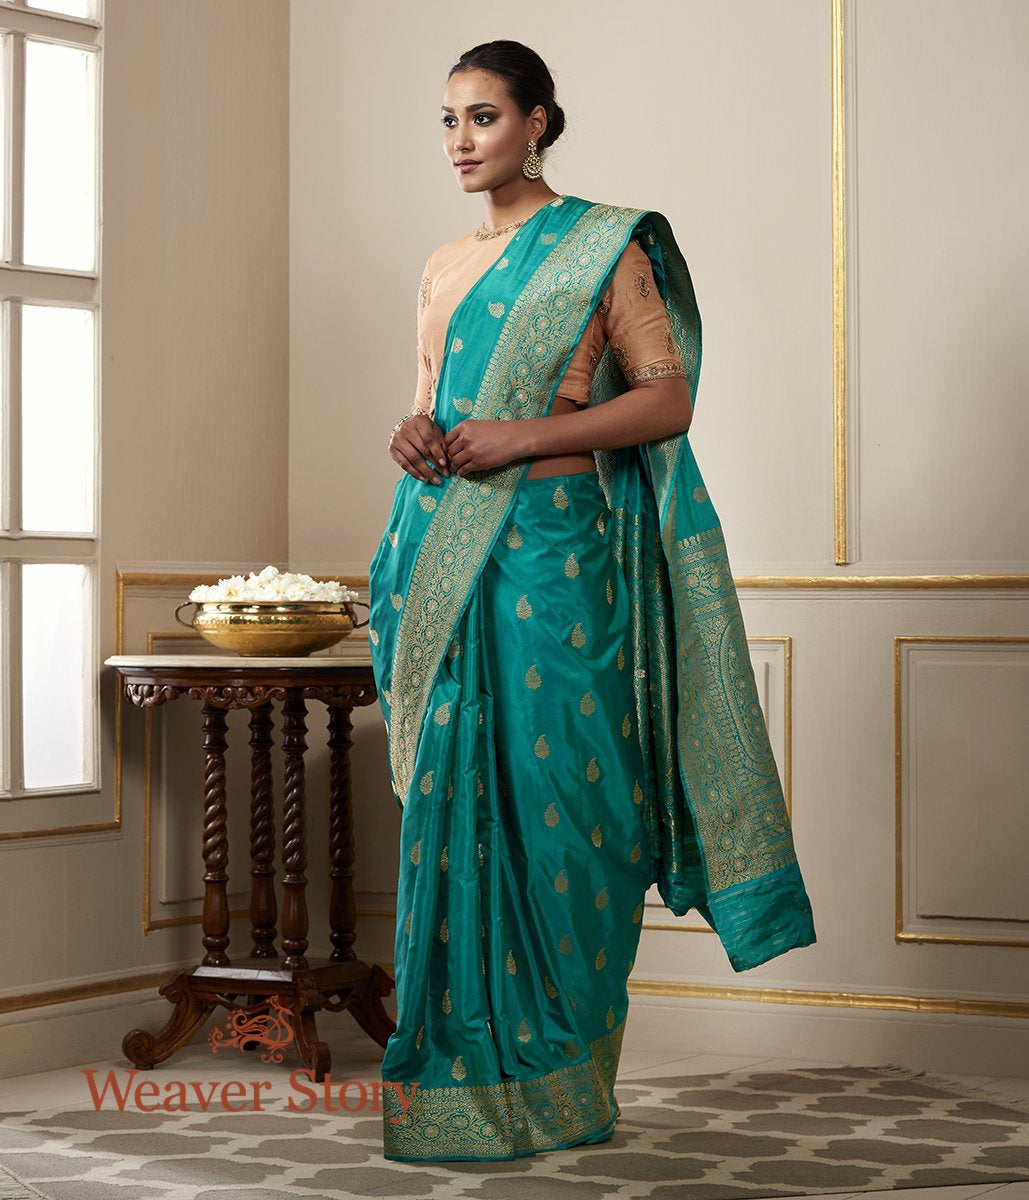 Handwoven Peacock Blue Kadhwa Booti Saree